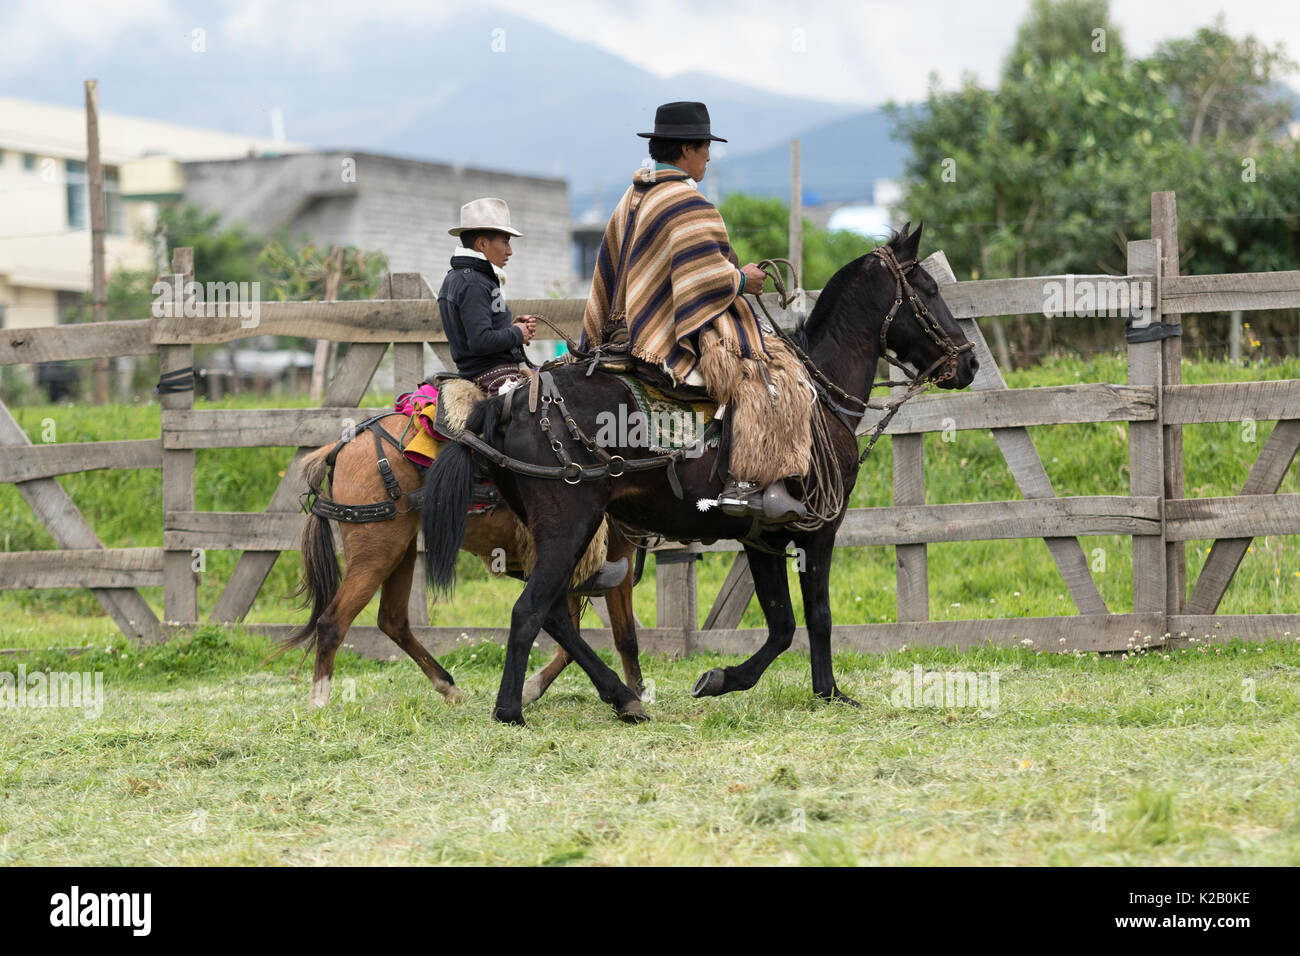 June 3, 2017 Machachi, Ecuador: cowboys called riding heir horses in the morning in the high altitude town - Stock Image